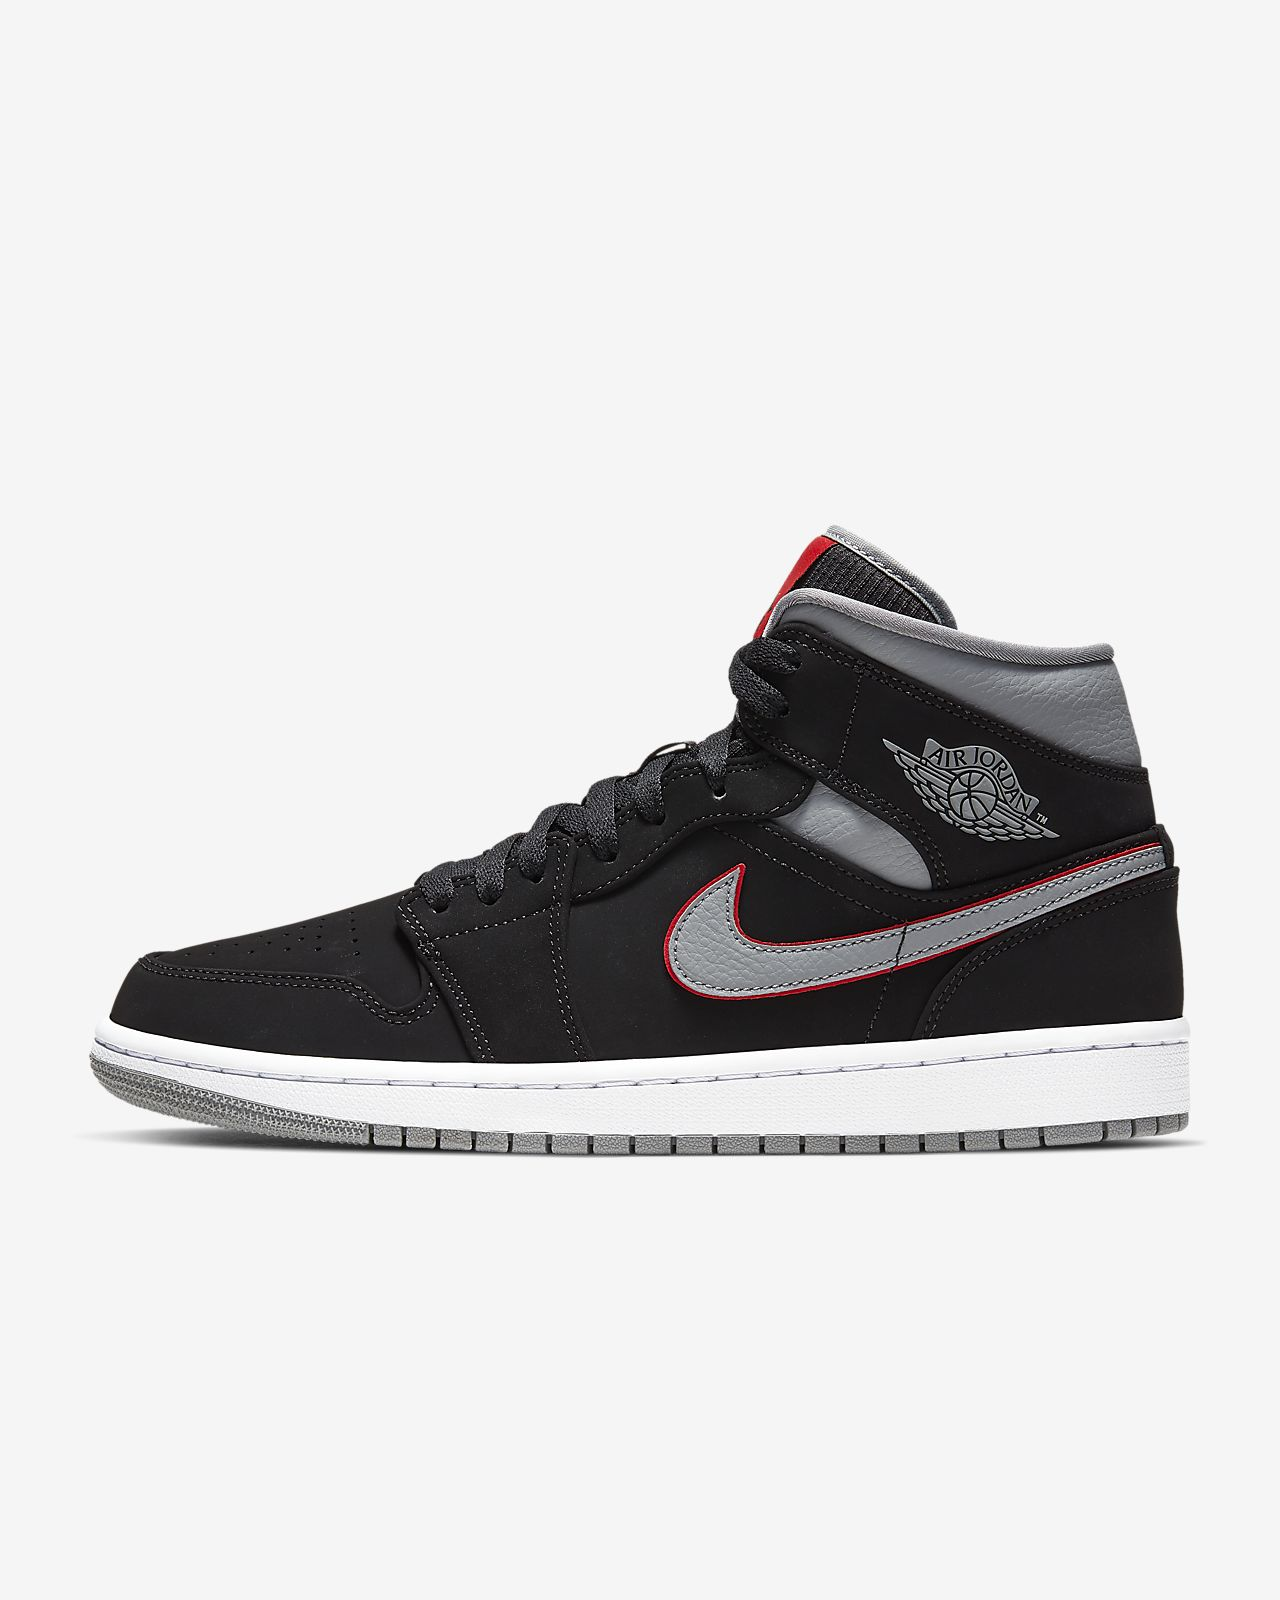 918efceb1b Air Jordan 1 Mid Men's Shoe. Nike.com AU